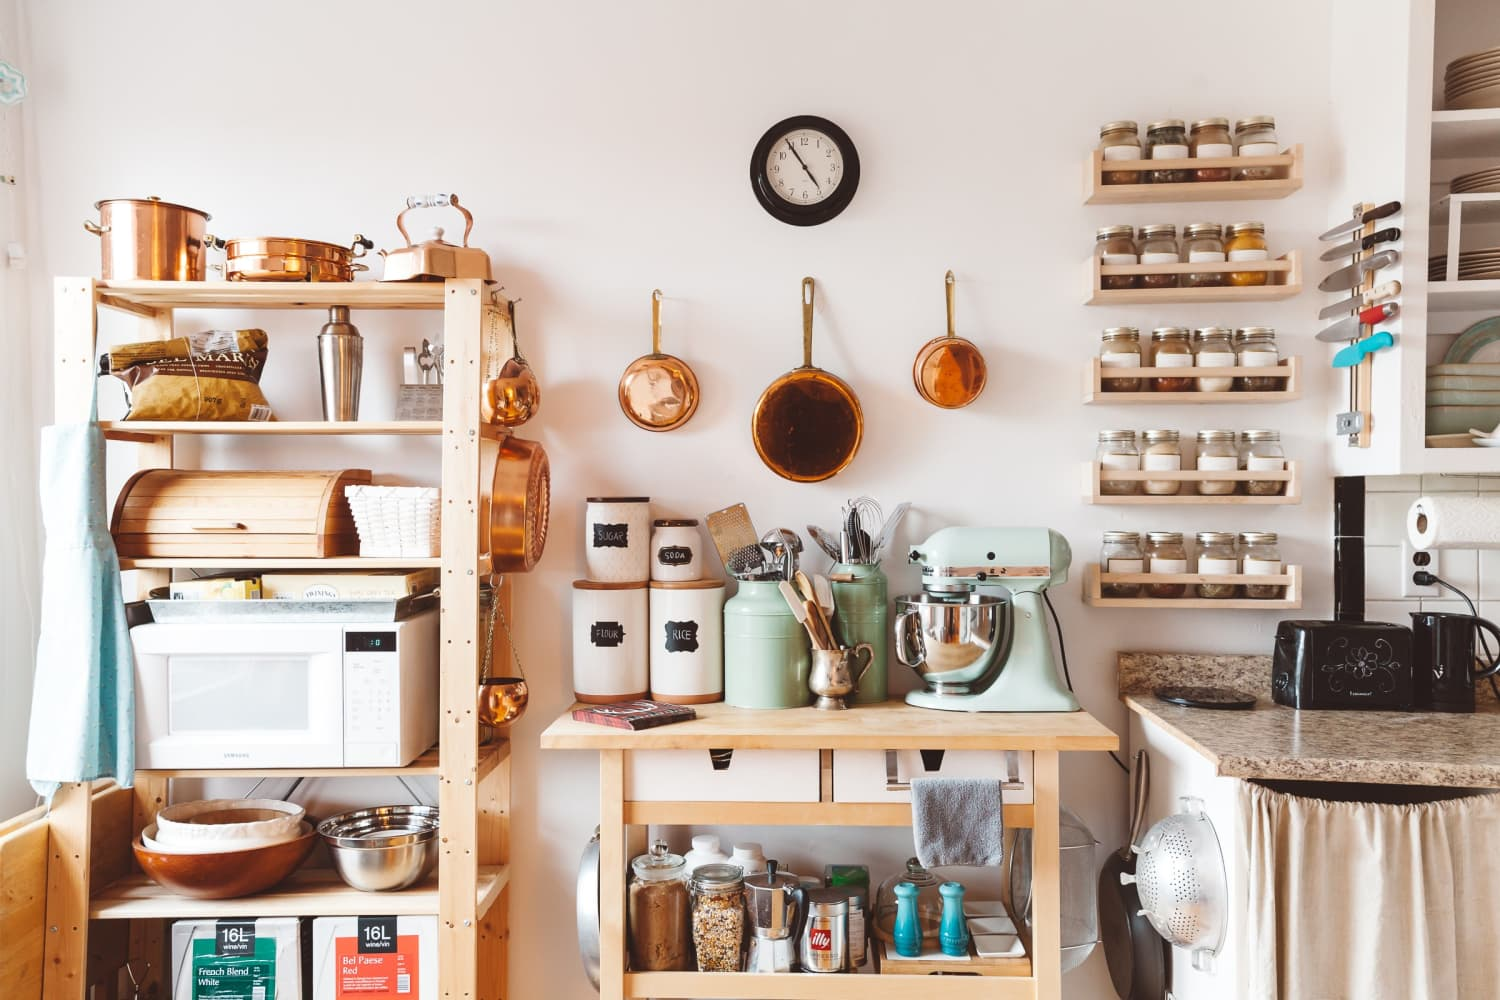 7 Things You Have Too Many of (and What to Do with Them)